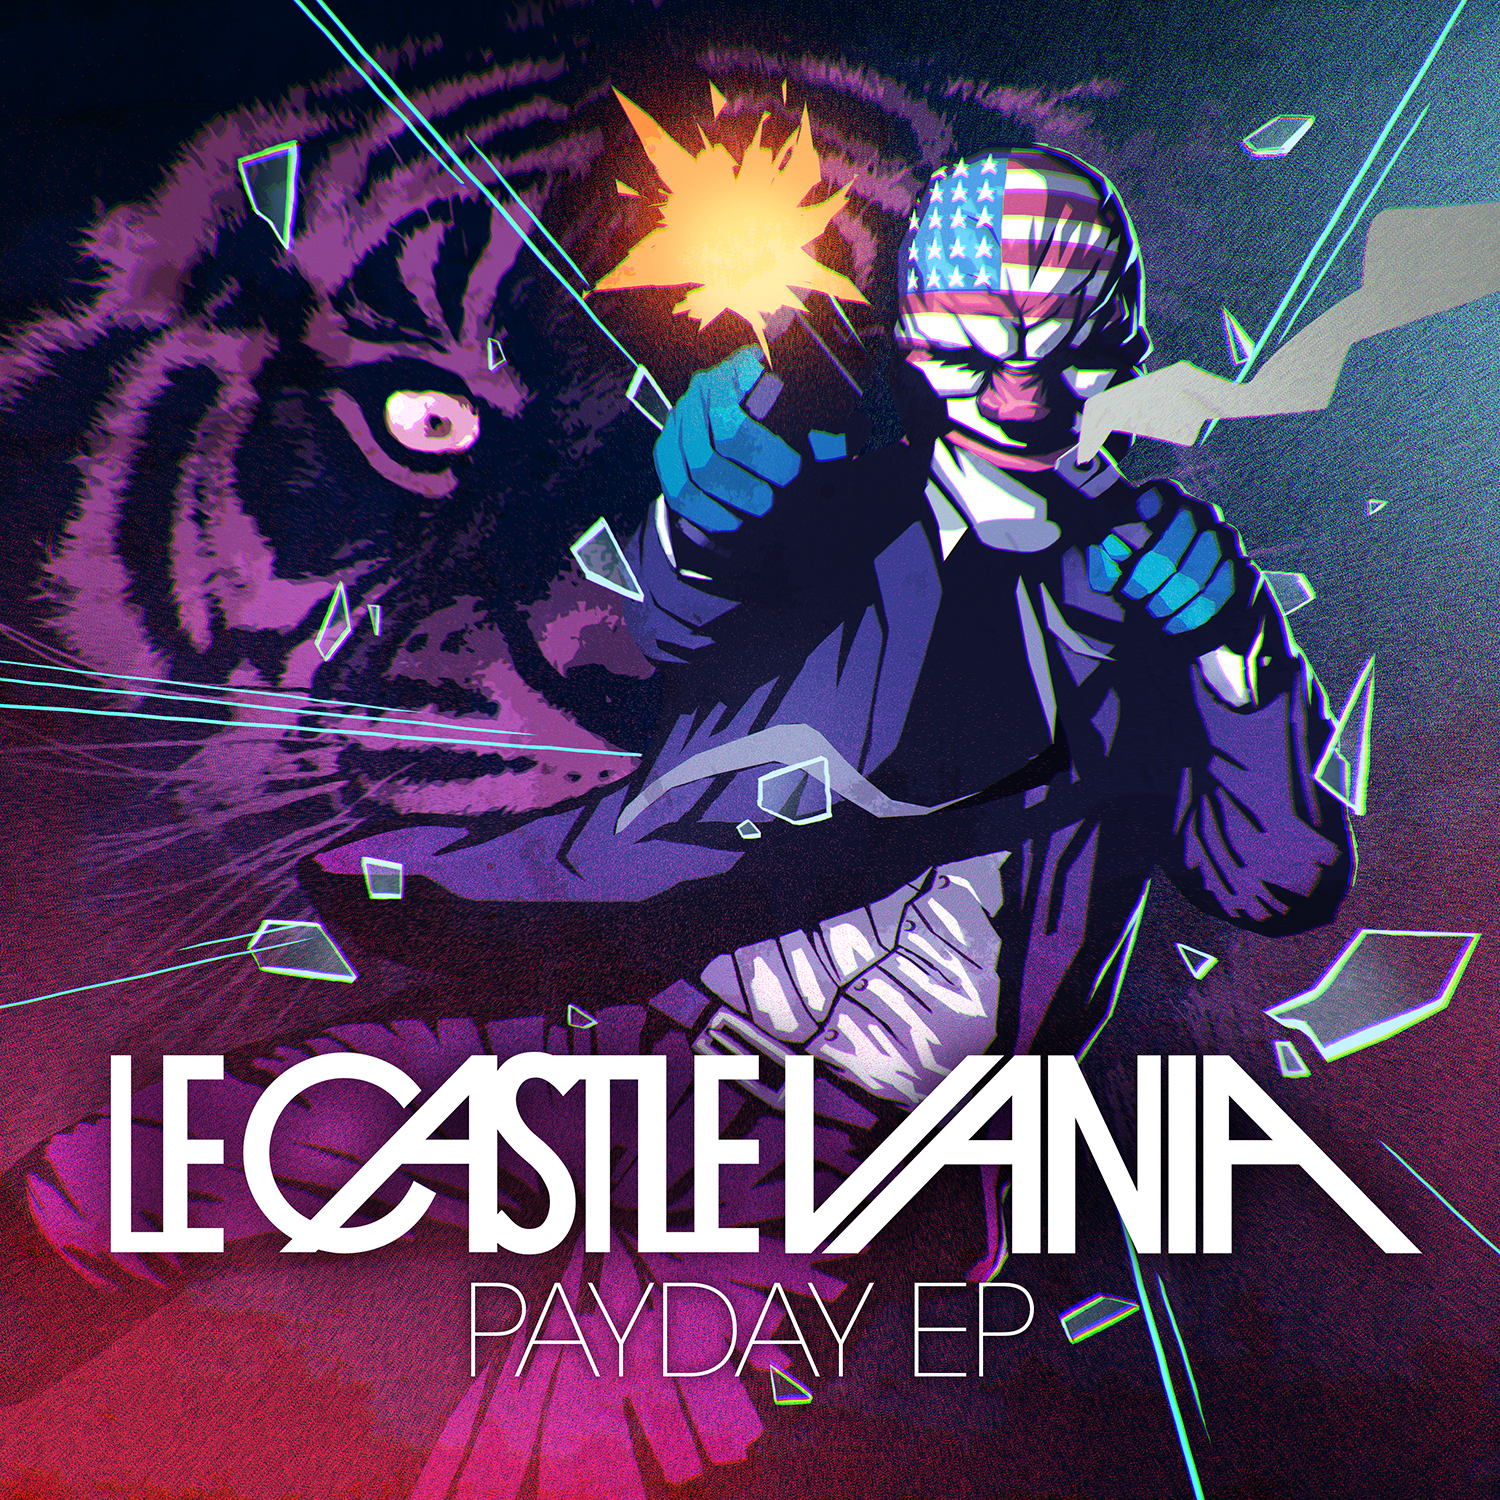 Payday EP